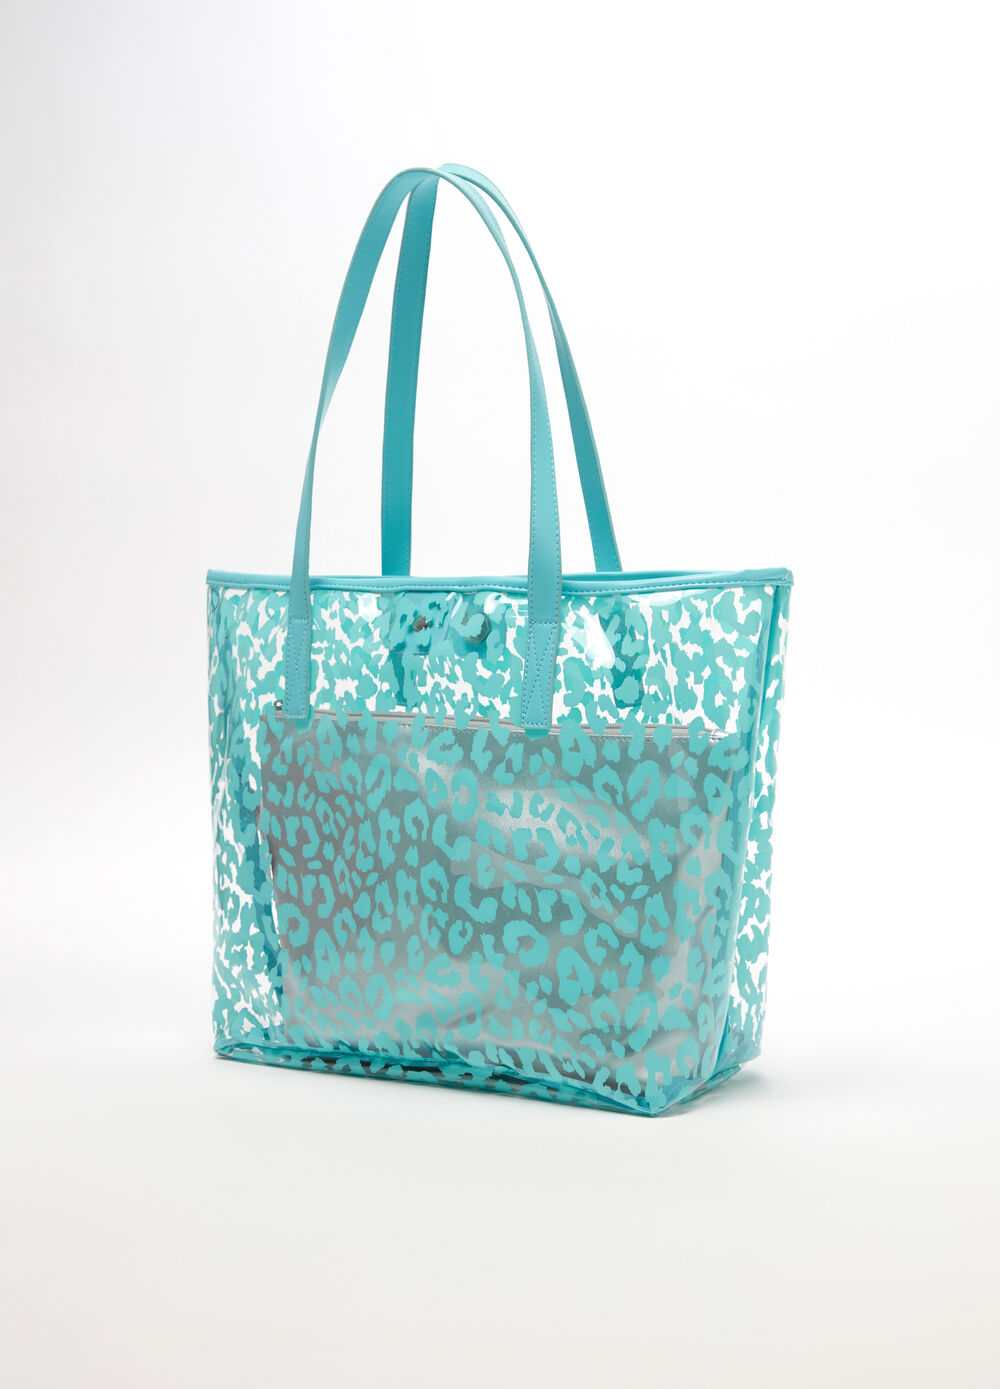 Bolsa de playa animal print con estuche